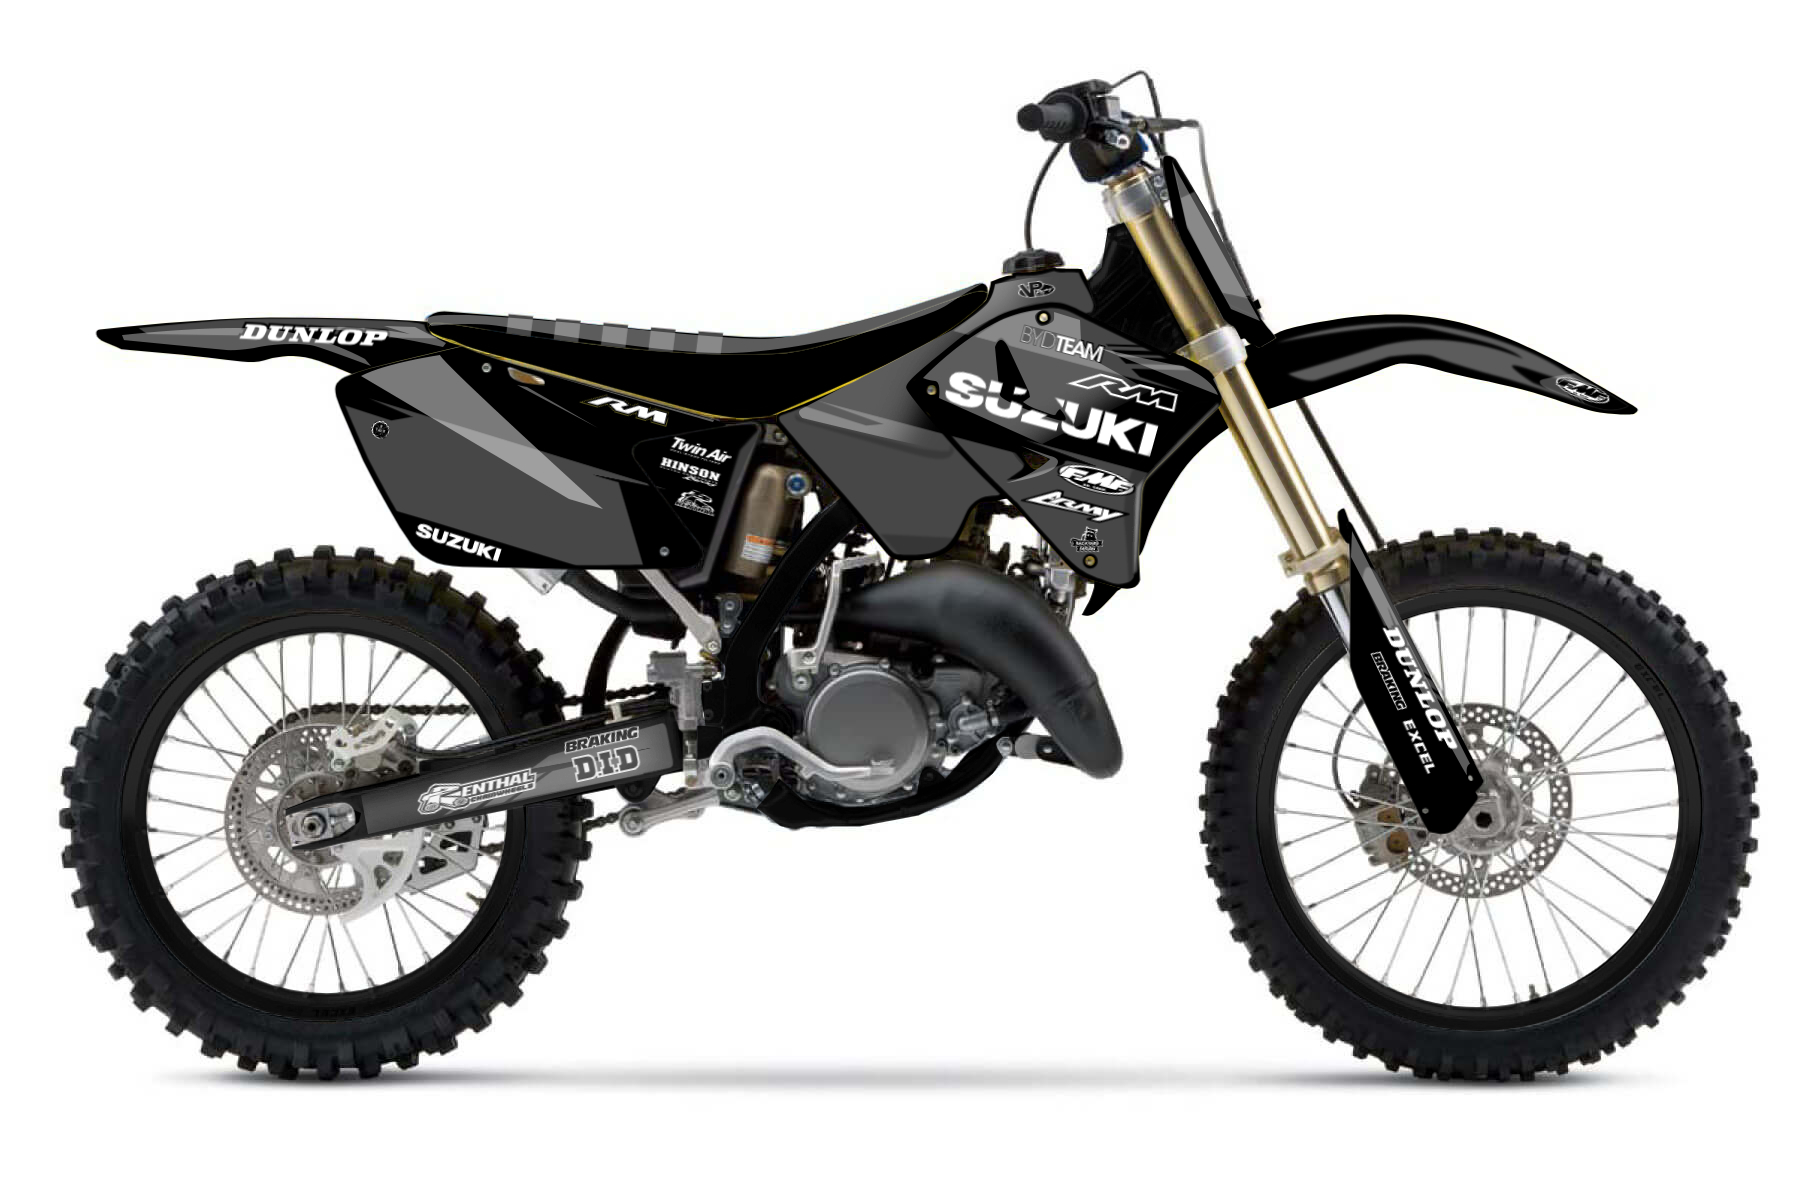 Suzuki RM125 MX Graphic Kits  You got to love the RM125. It is the perfect offroad bike for beginners and all those that love good handling and a lightweight chassis.